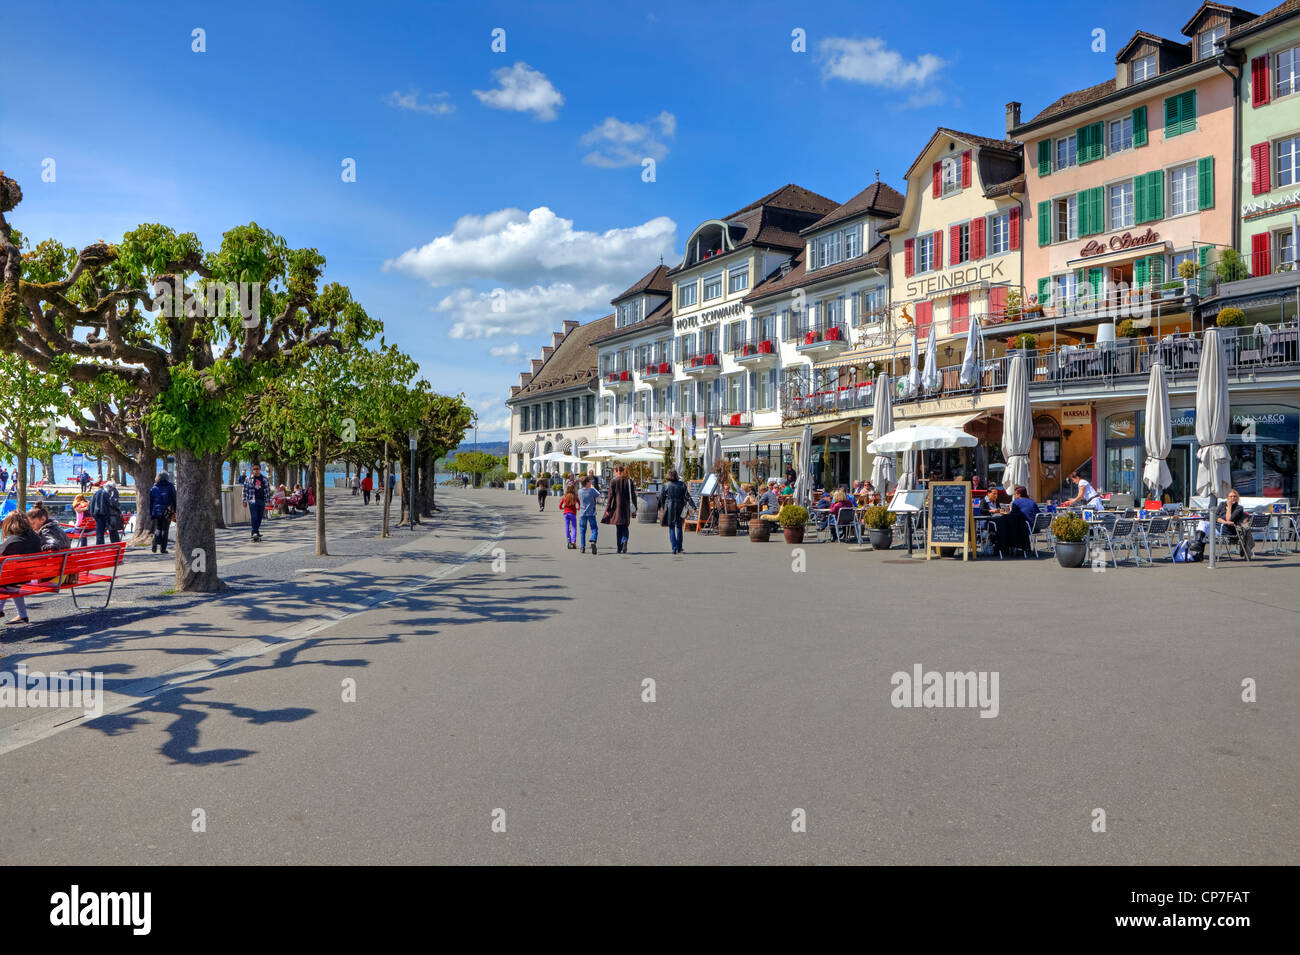 Rapperswil, Rapperswil-Jona, St. Gallen, Switzerland - Stock Image